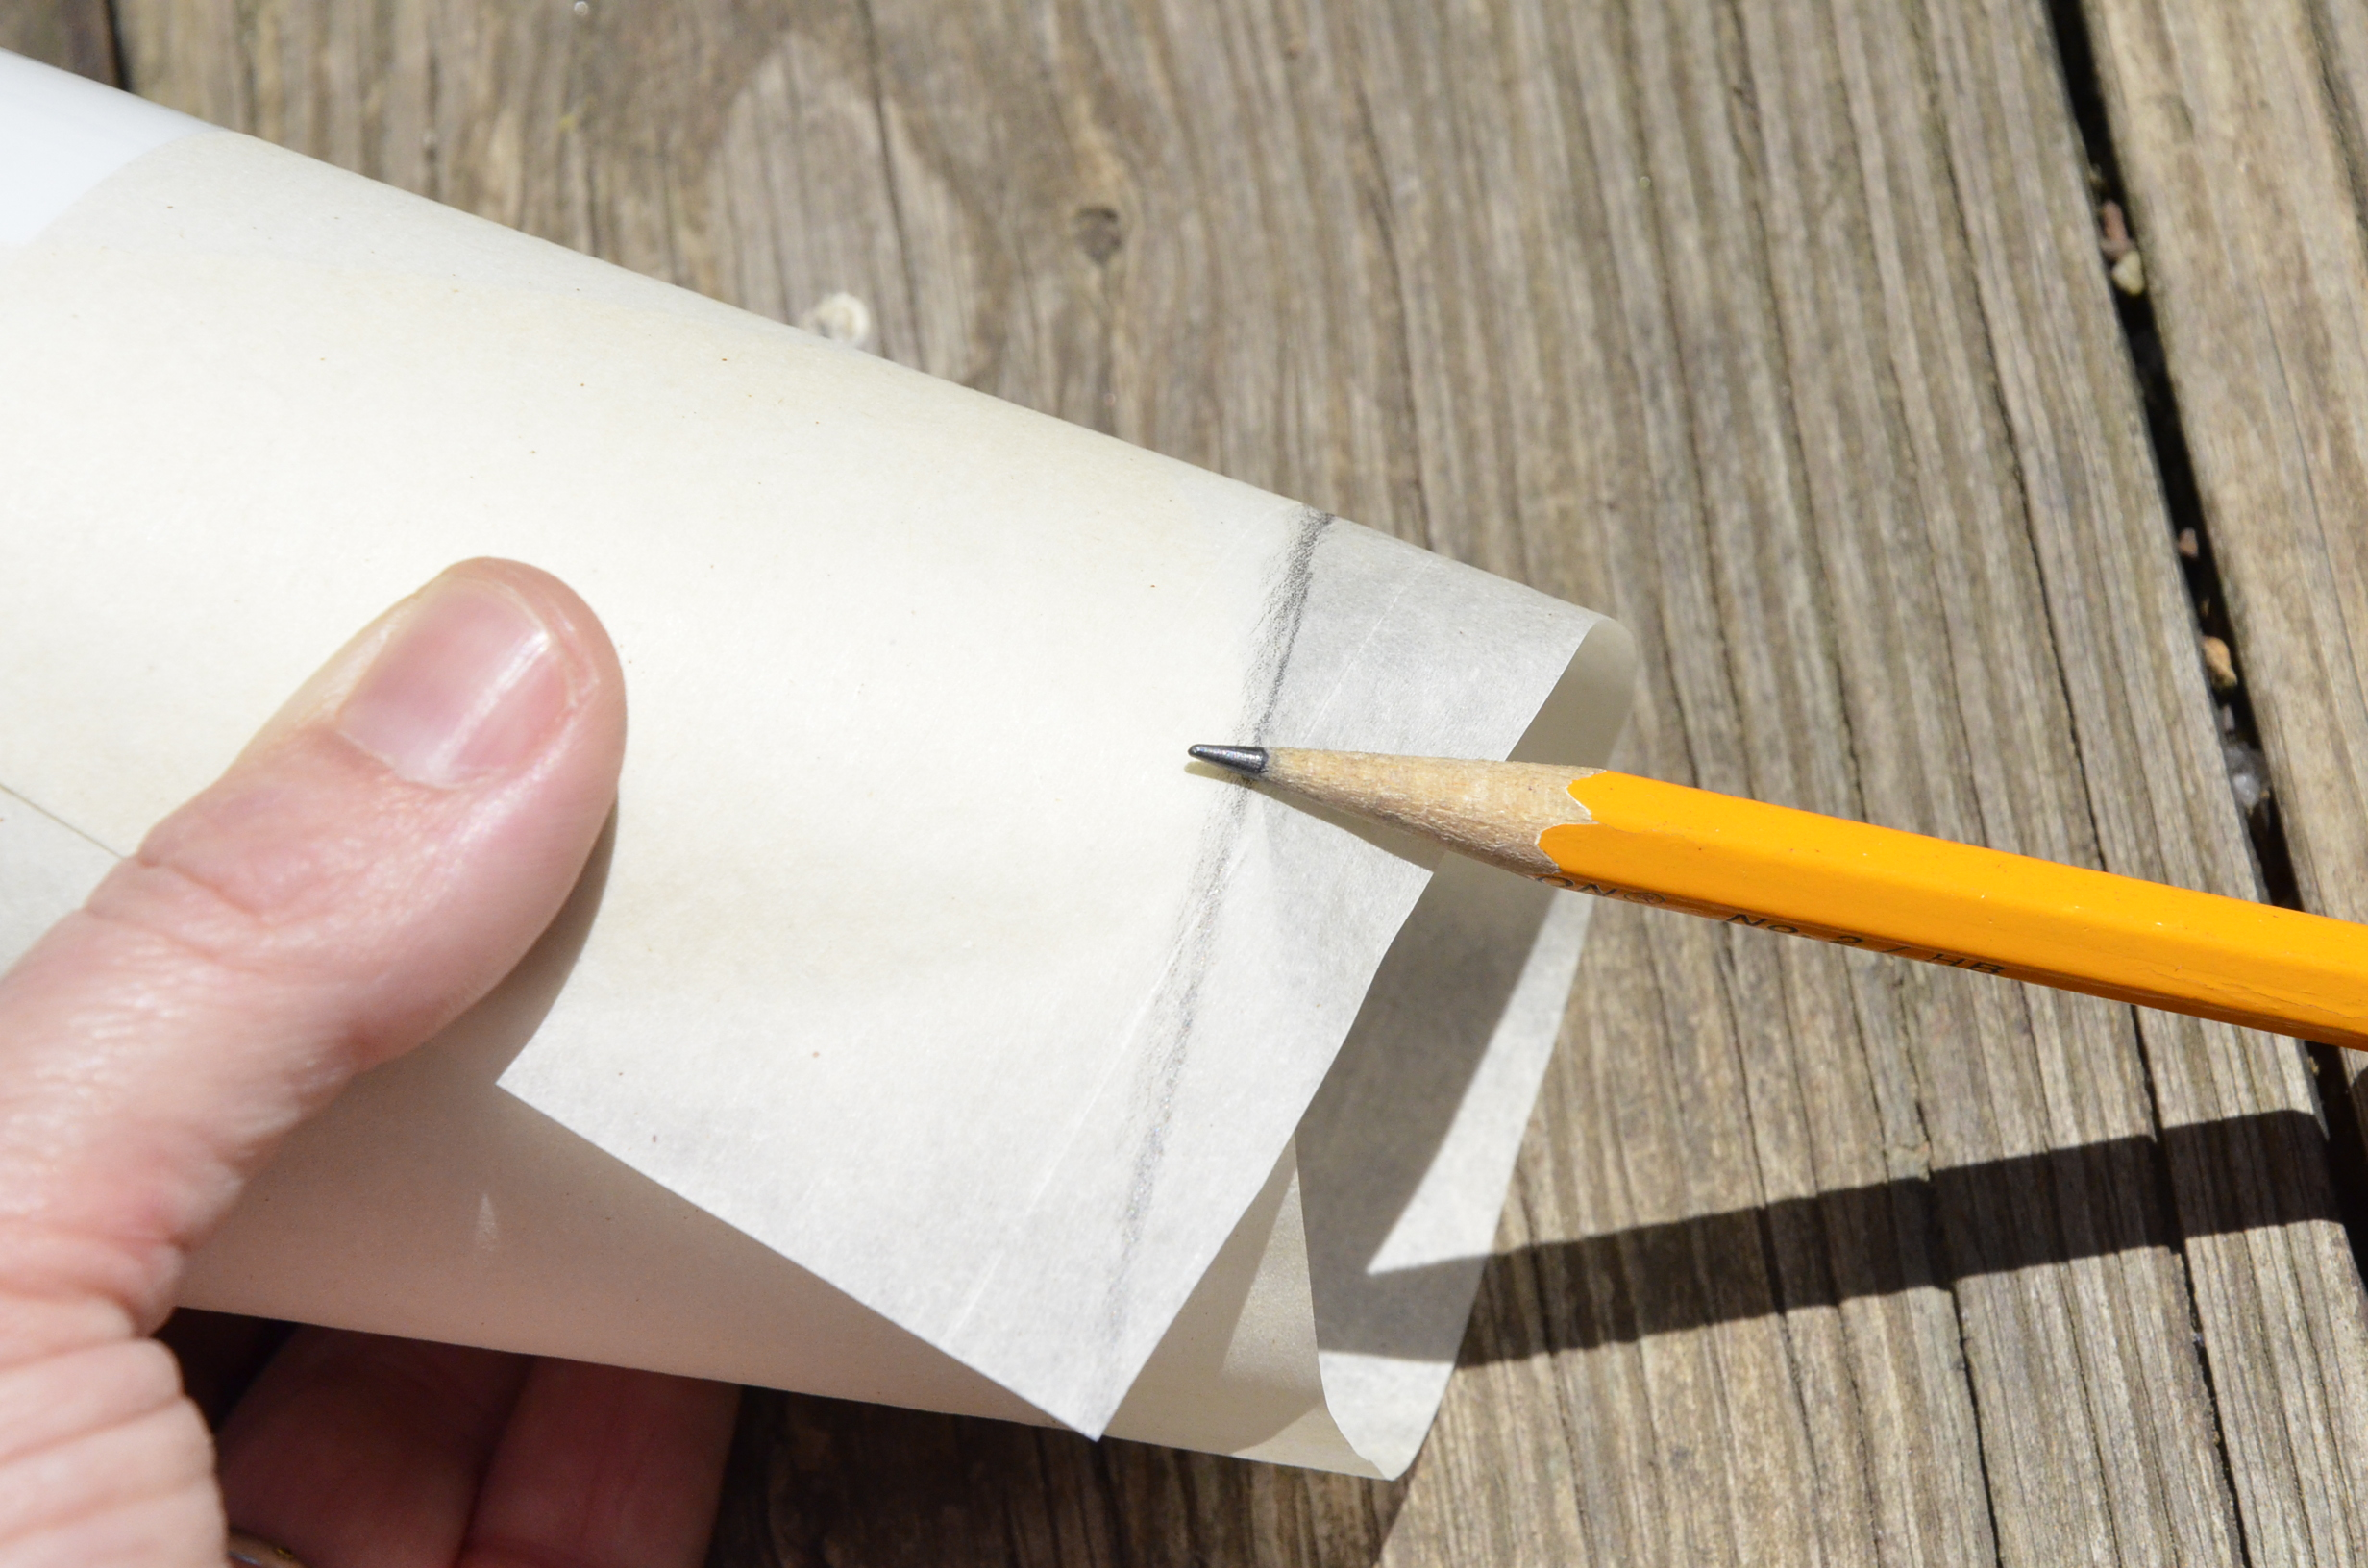 Use the side of a sharpened pencil to trace along the cutting edges.